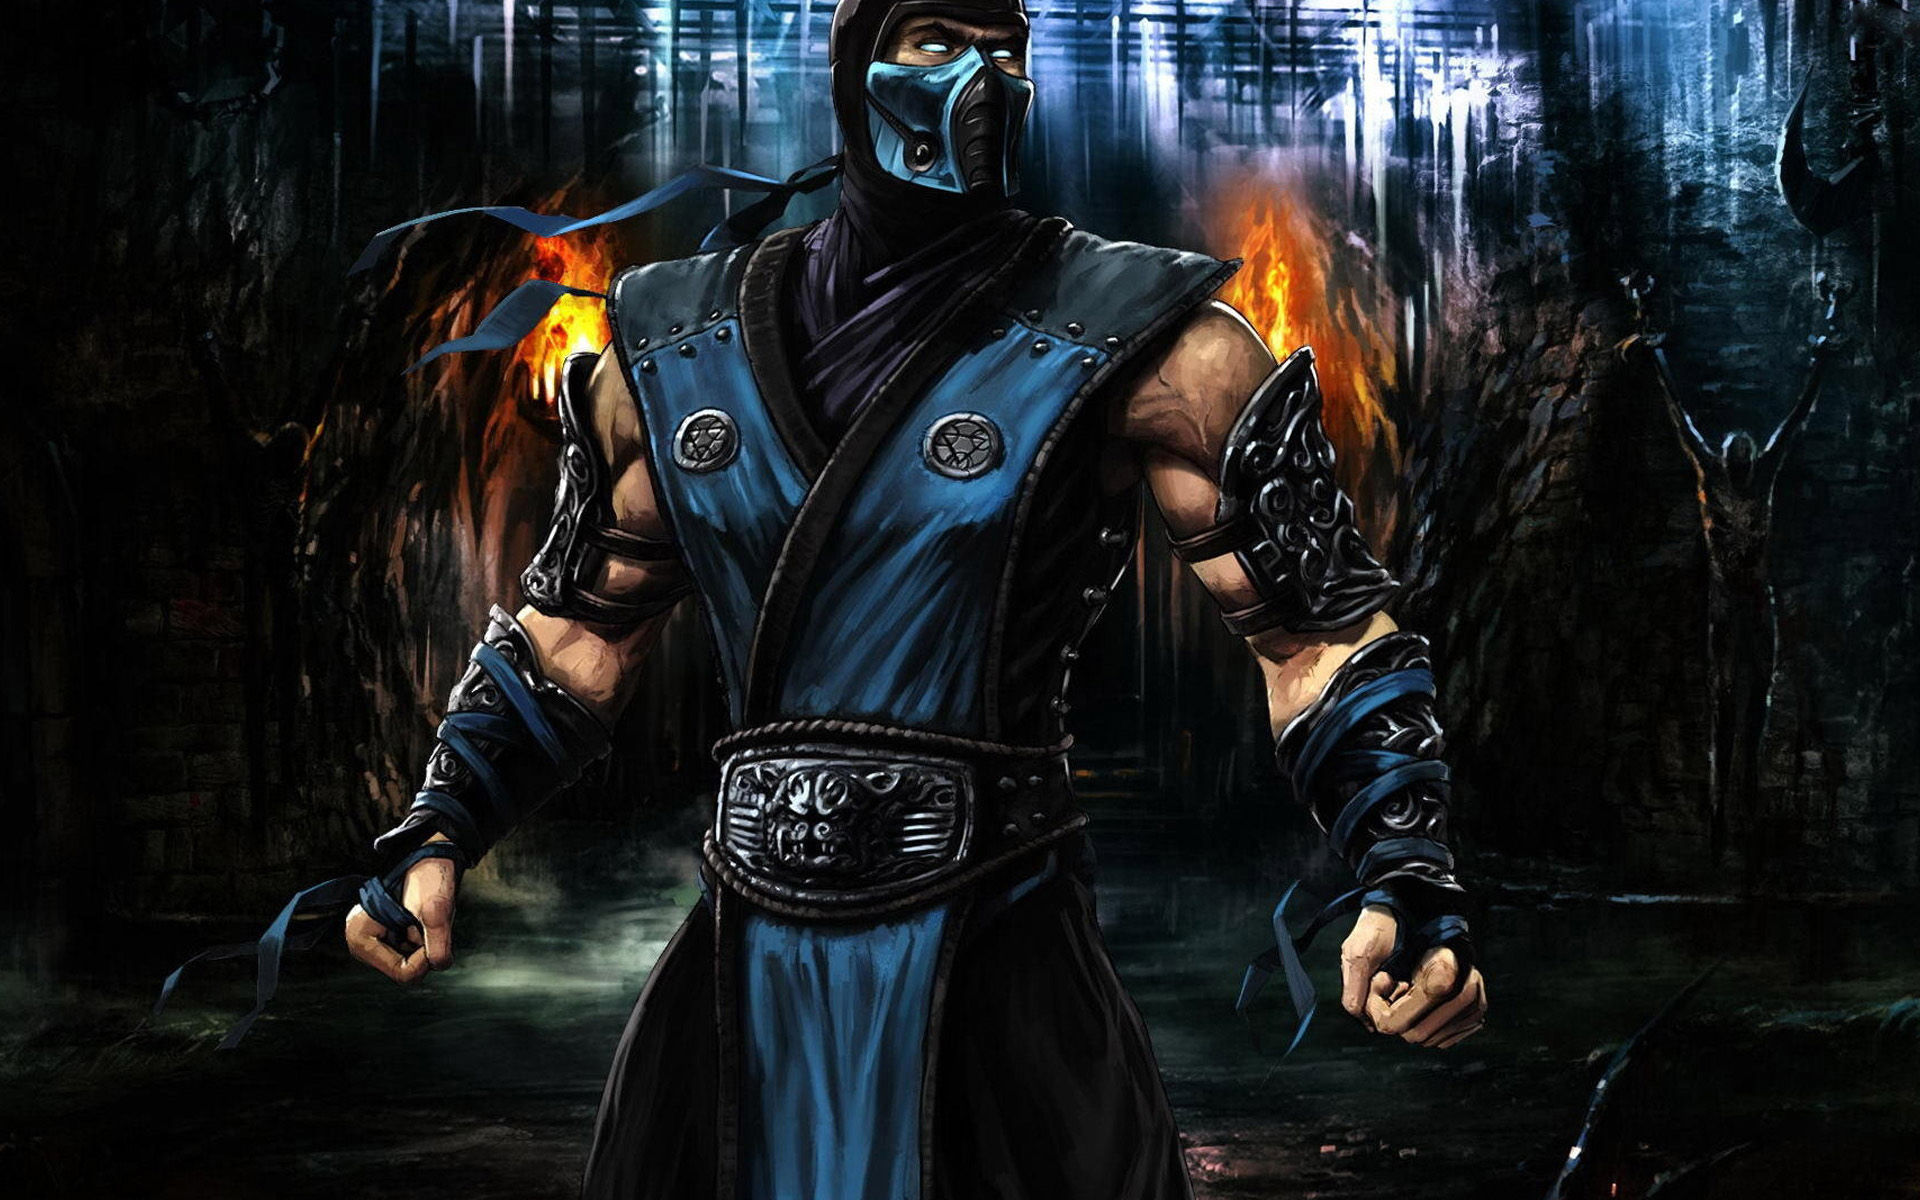 Mortal Kombat 2014 HD Wallpapers HD With Resolutions 19201200 Pixel 1920x1200